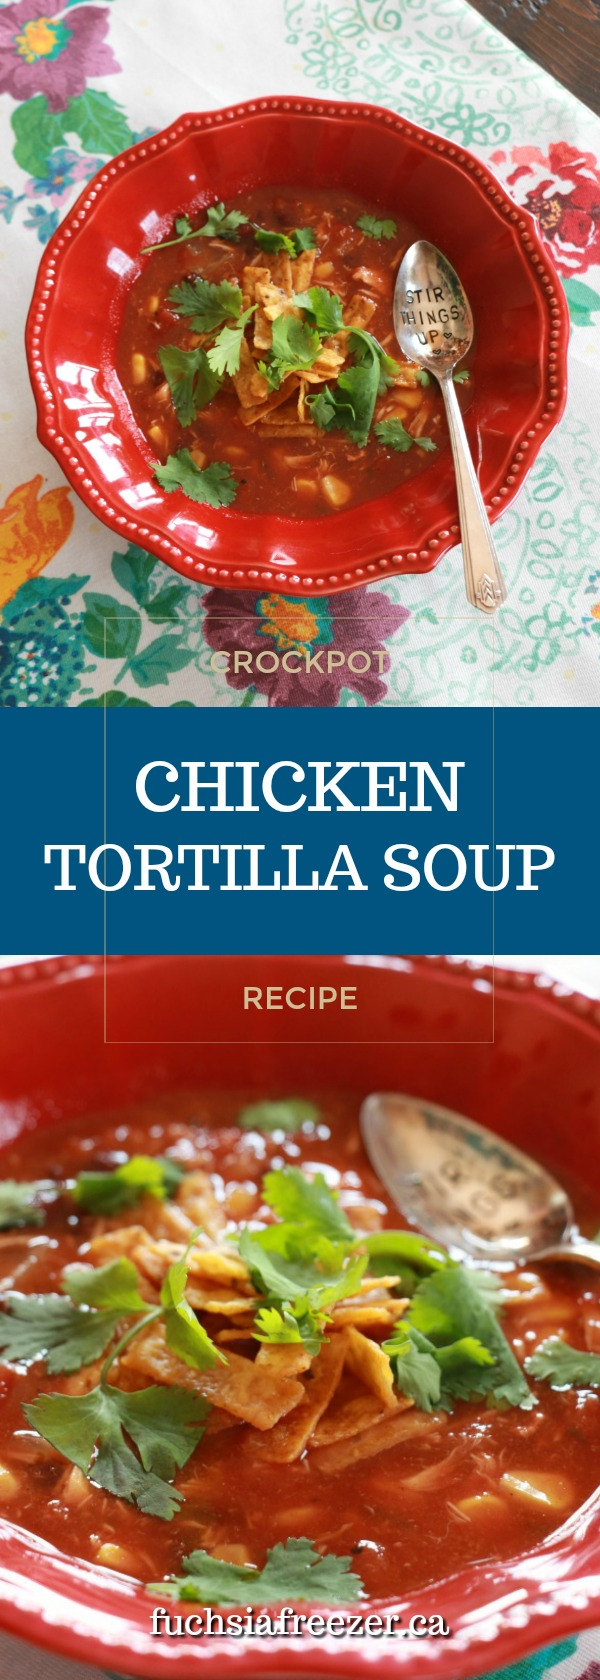 Delicious and easy Chicken Tortilla Soup - made in the crock pot! Take 10 minutes in the morning to ensure dinner time success!